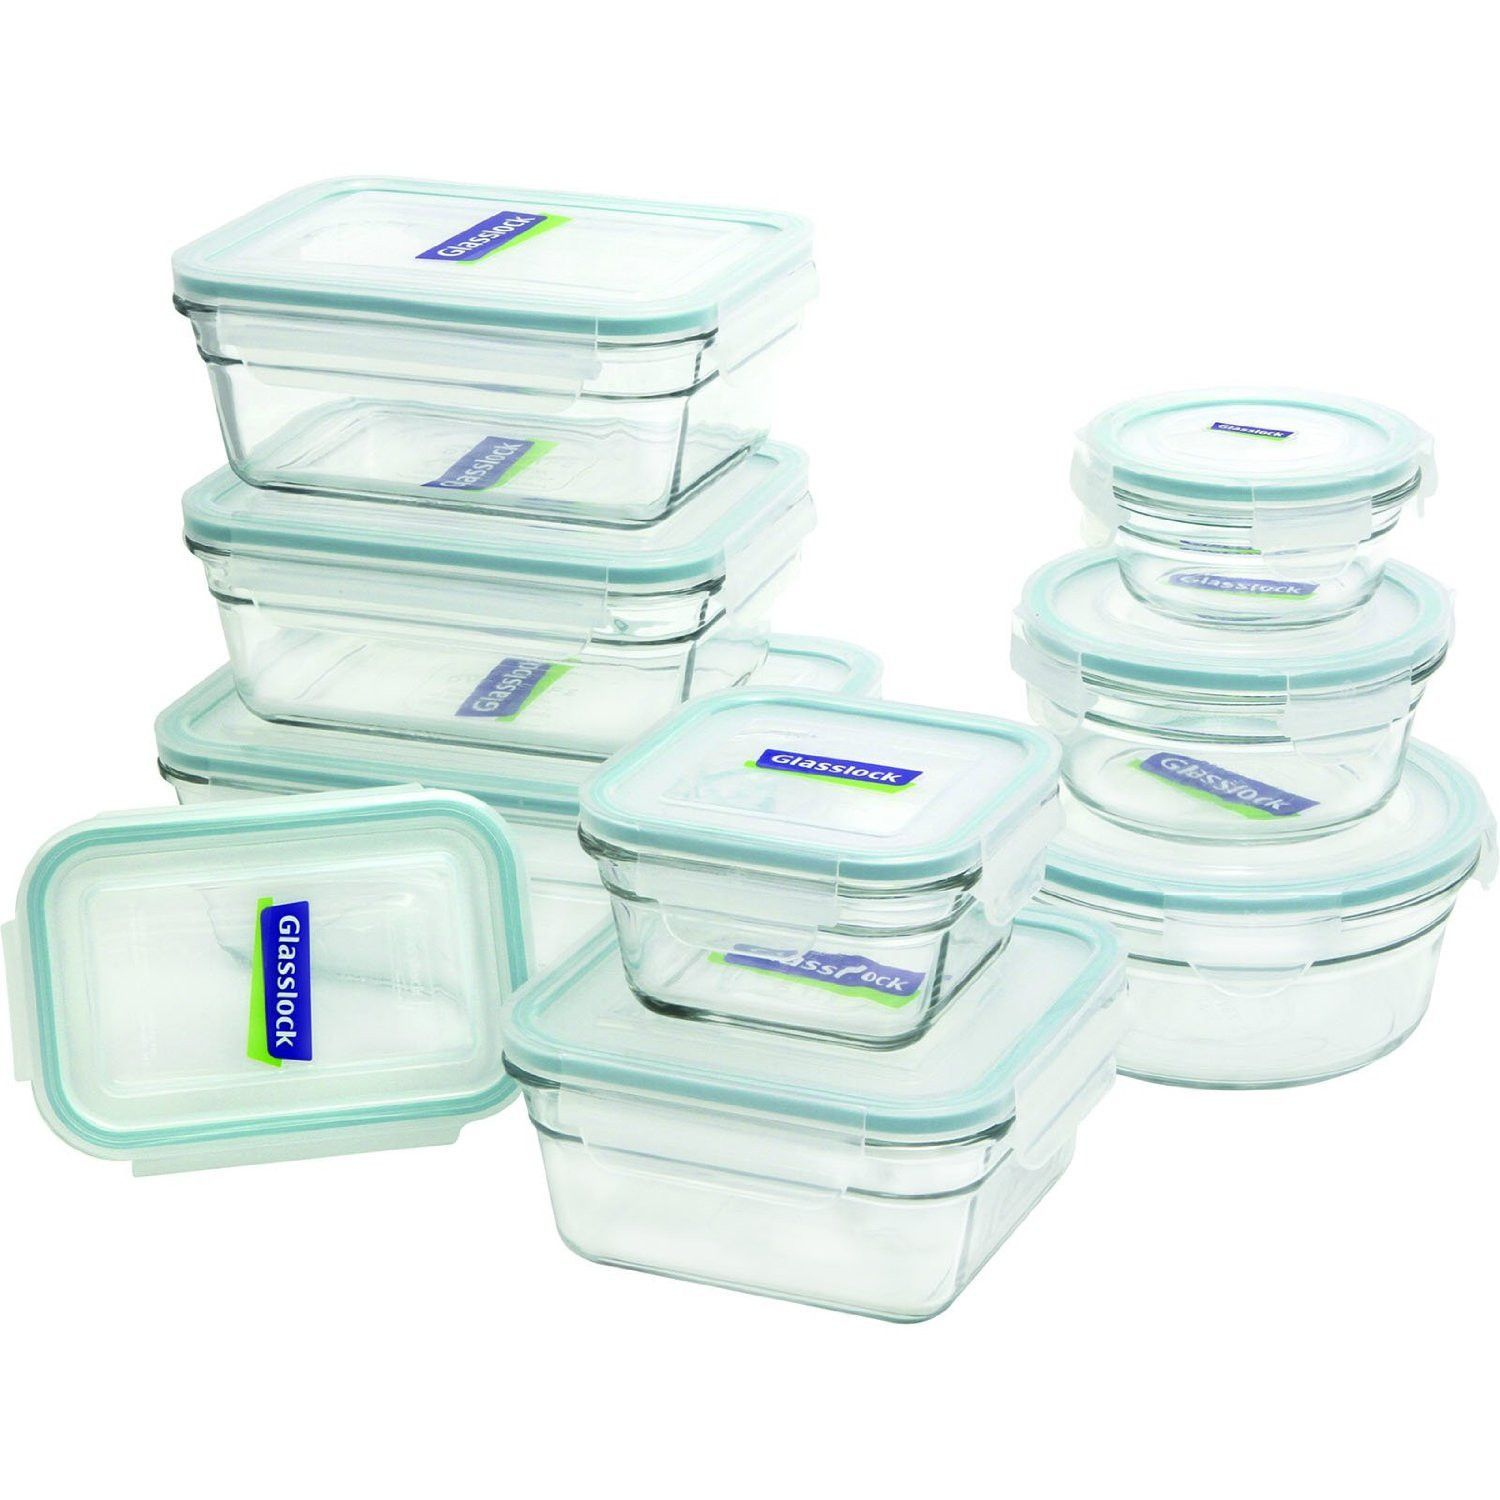 Glasslock Food Storage Container Sets Glasslock 18Piece Food Storageoven Safe Container Settigerfn